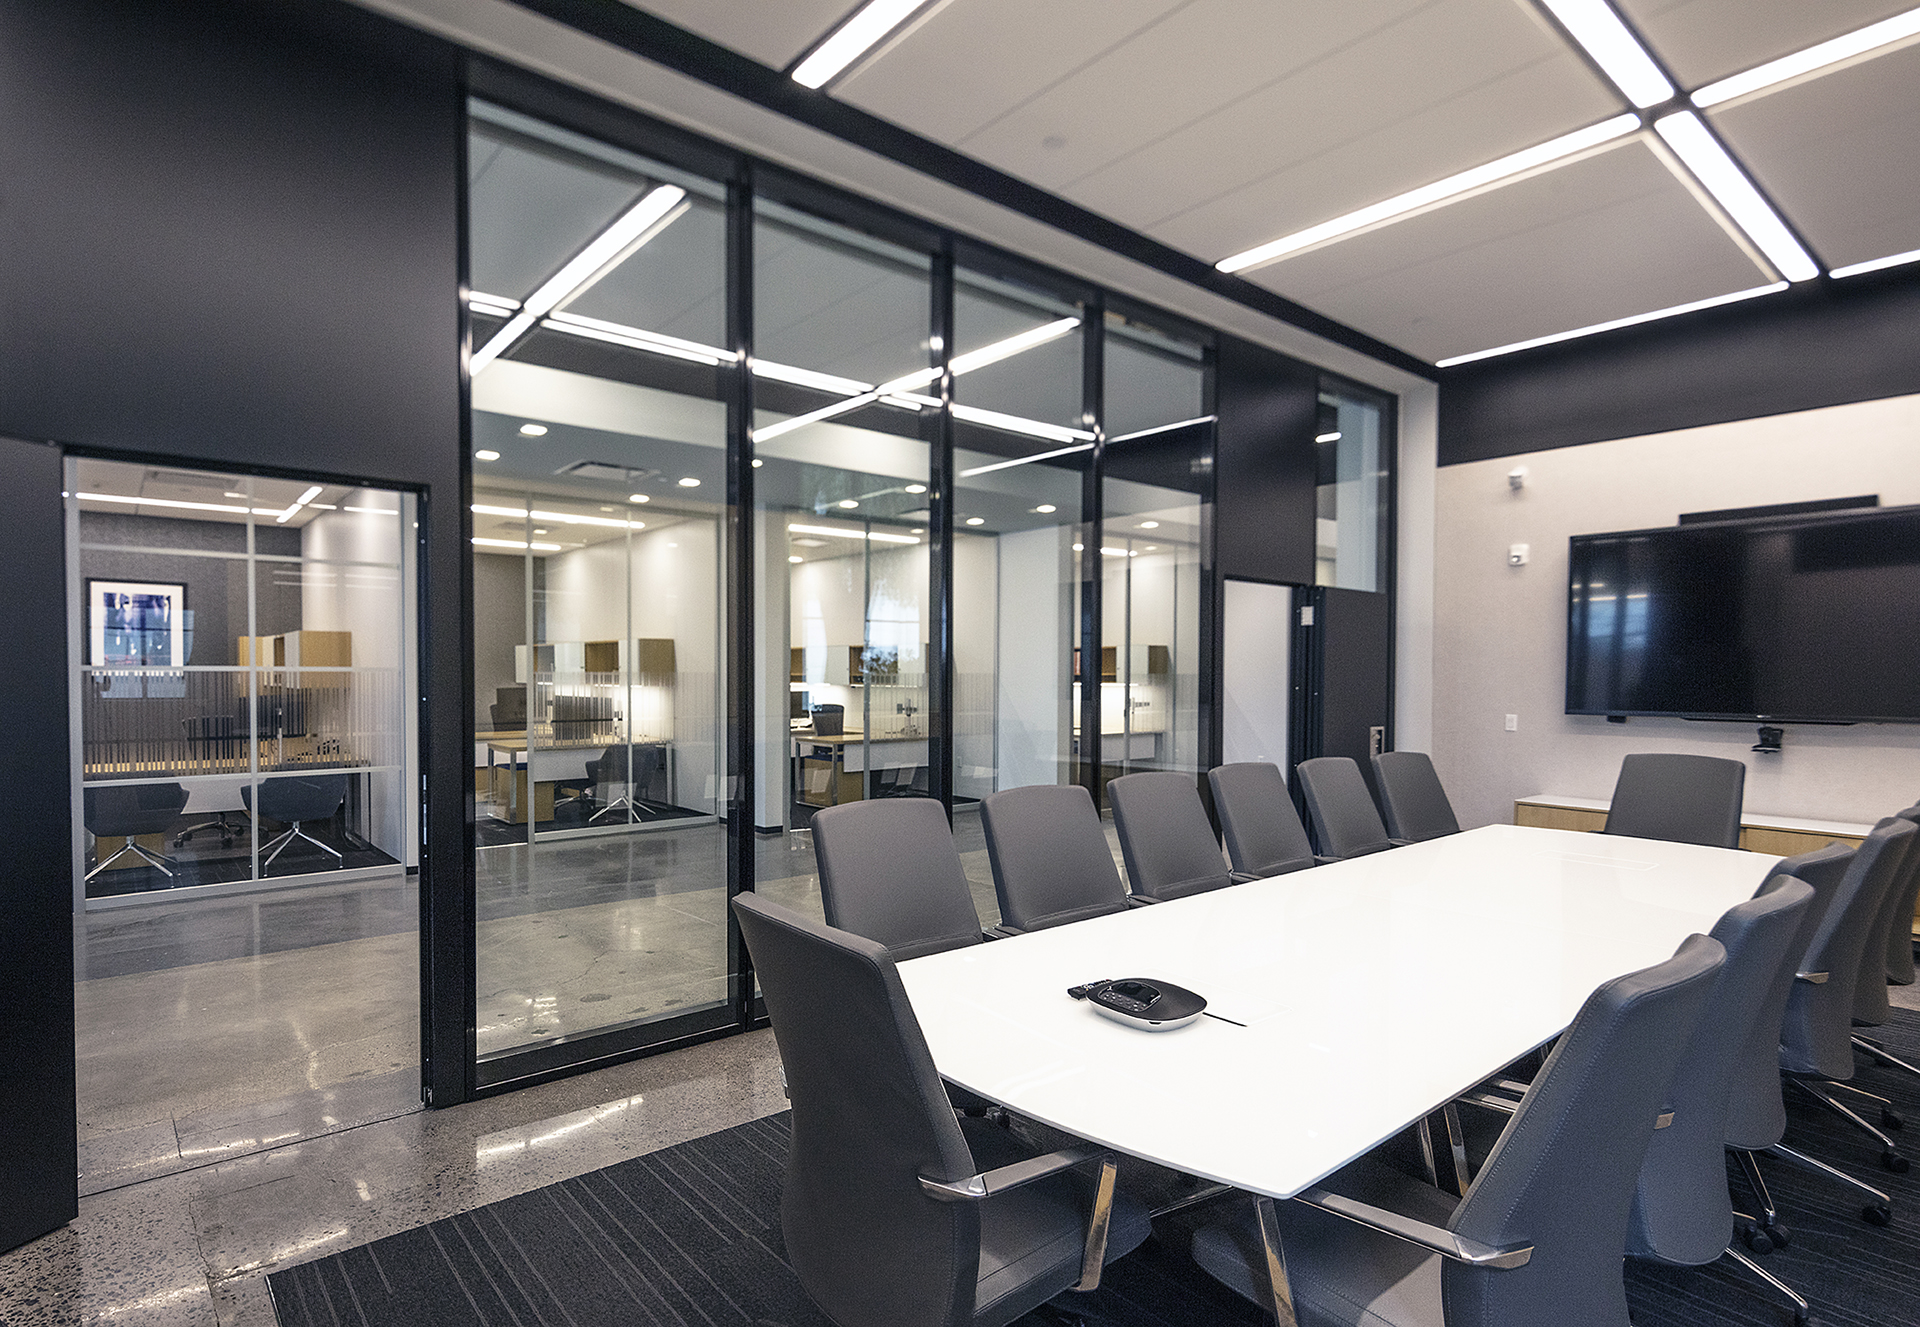 Modernfoldstyles Showroom Large Conference Room Glass Walls And Operable Partitions By Modernfoldstyles